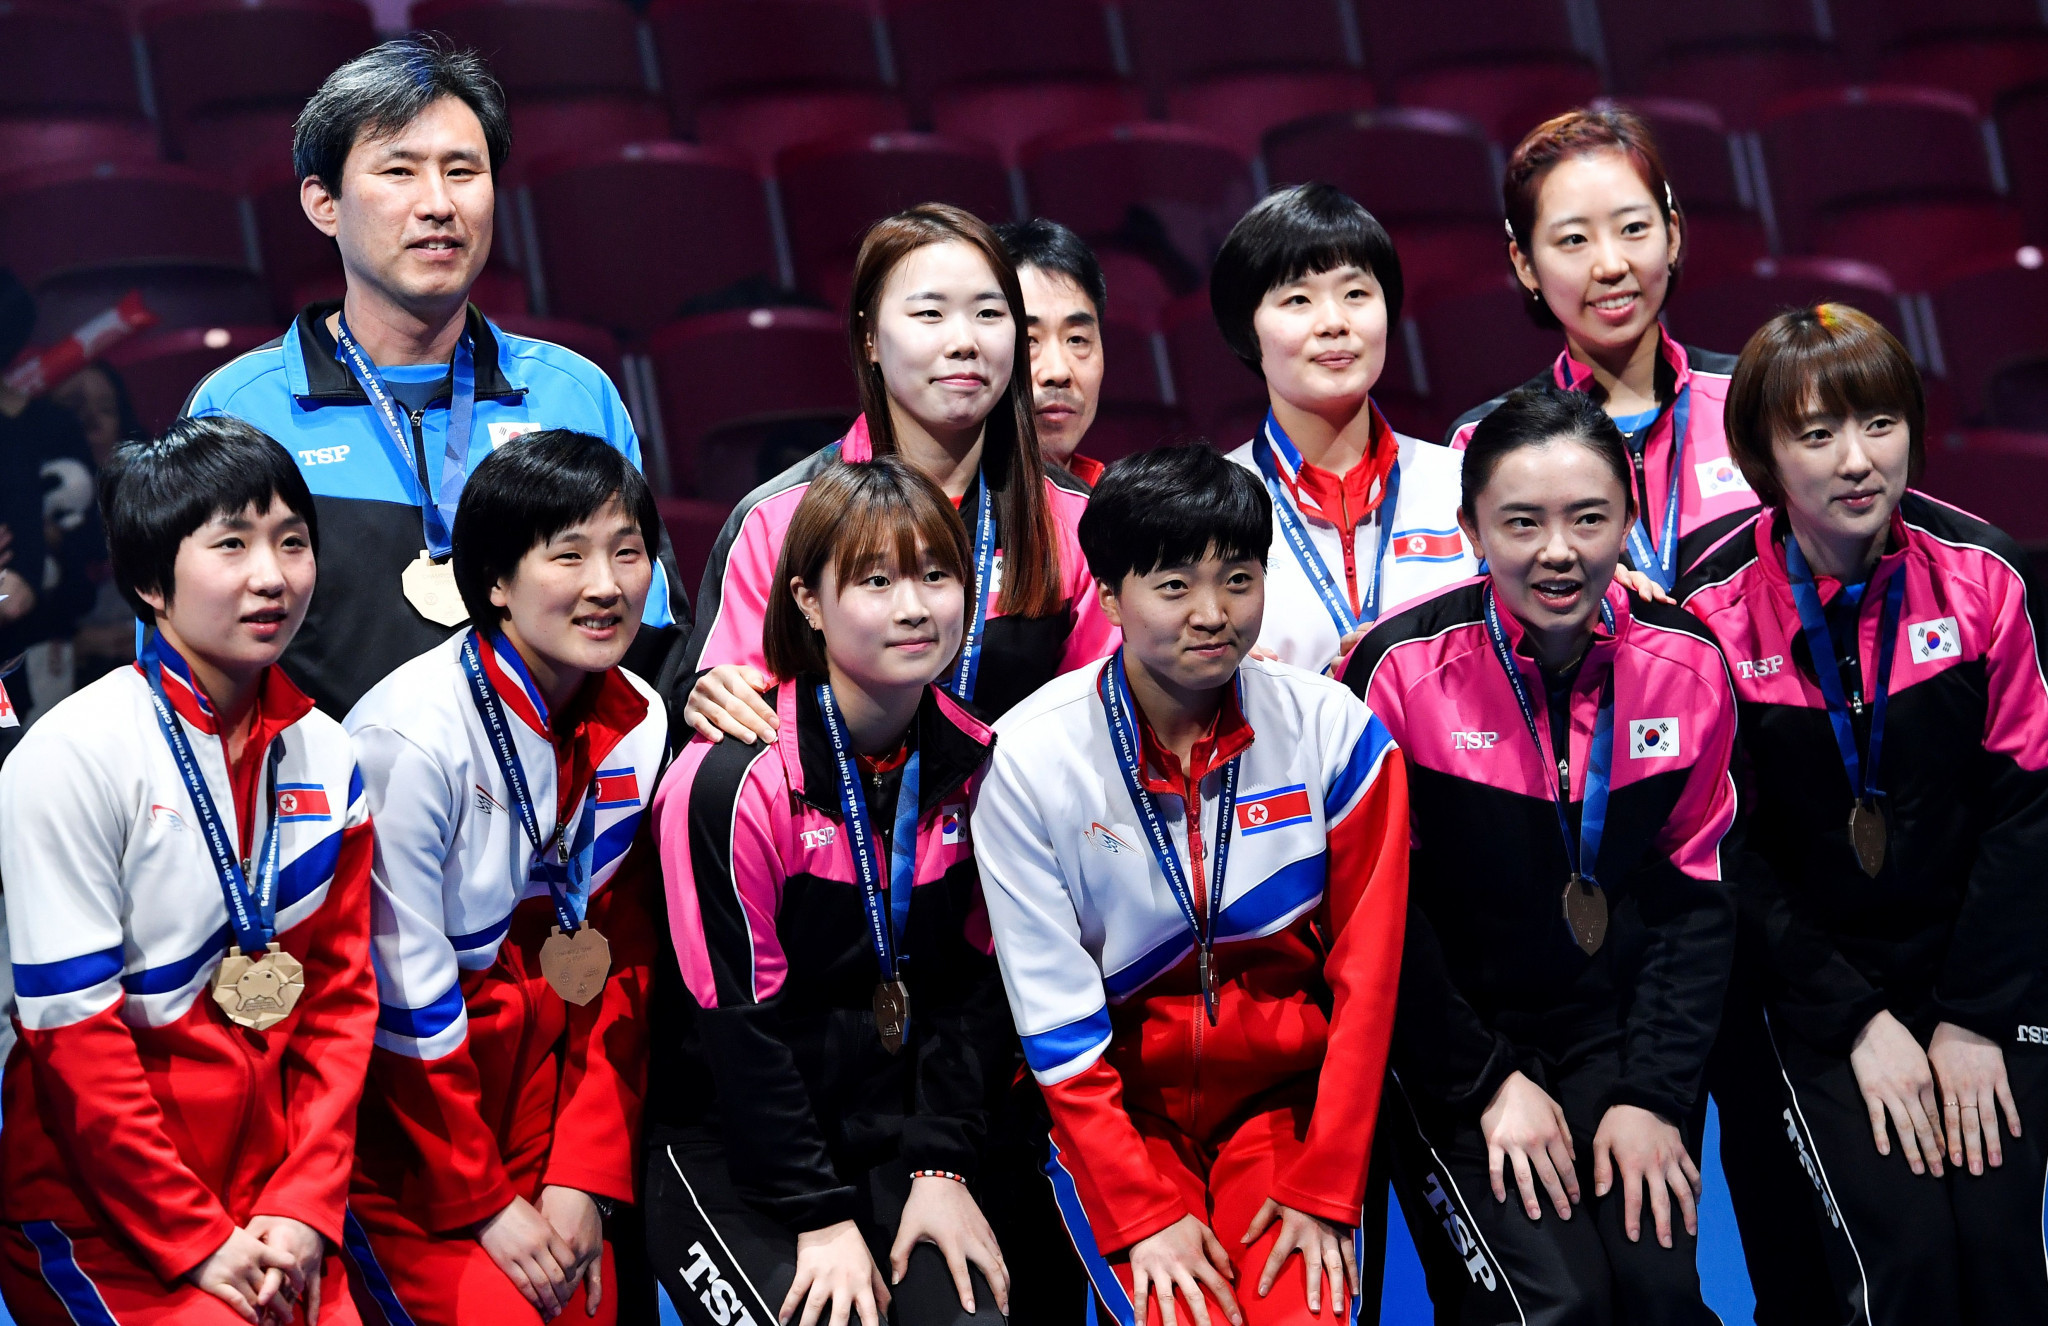 North and South Korea competed together at the recent World Team Table Tennis Championships in Halmstad in Sweden ©Getty Images